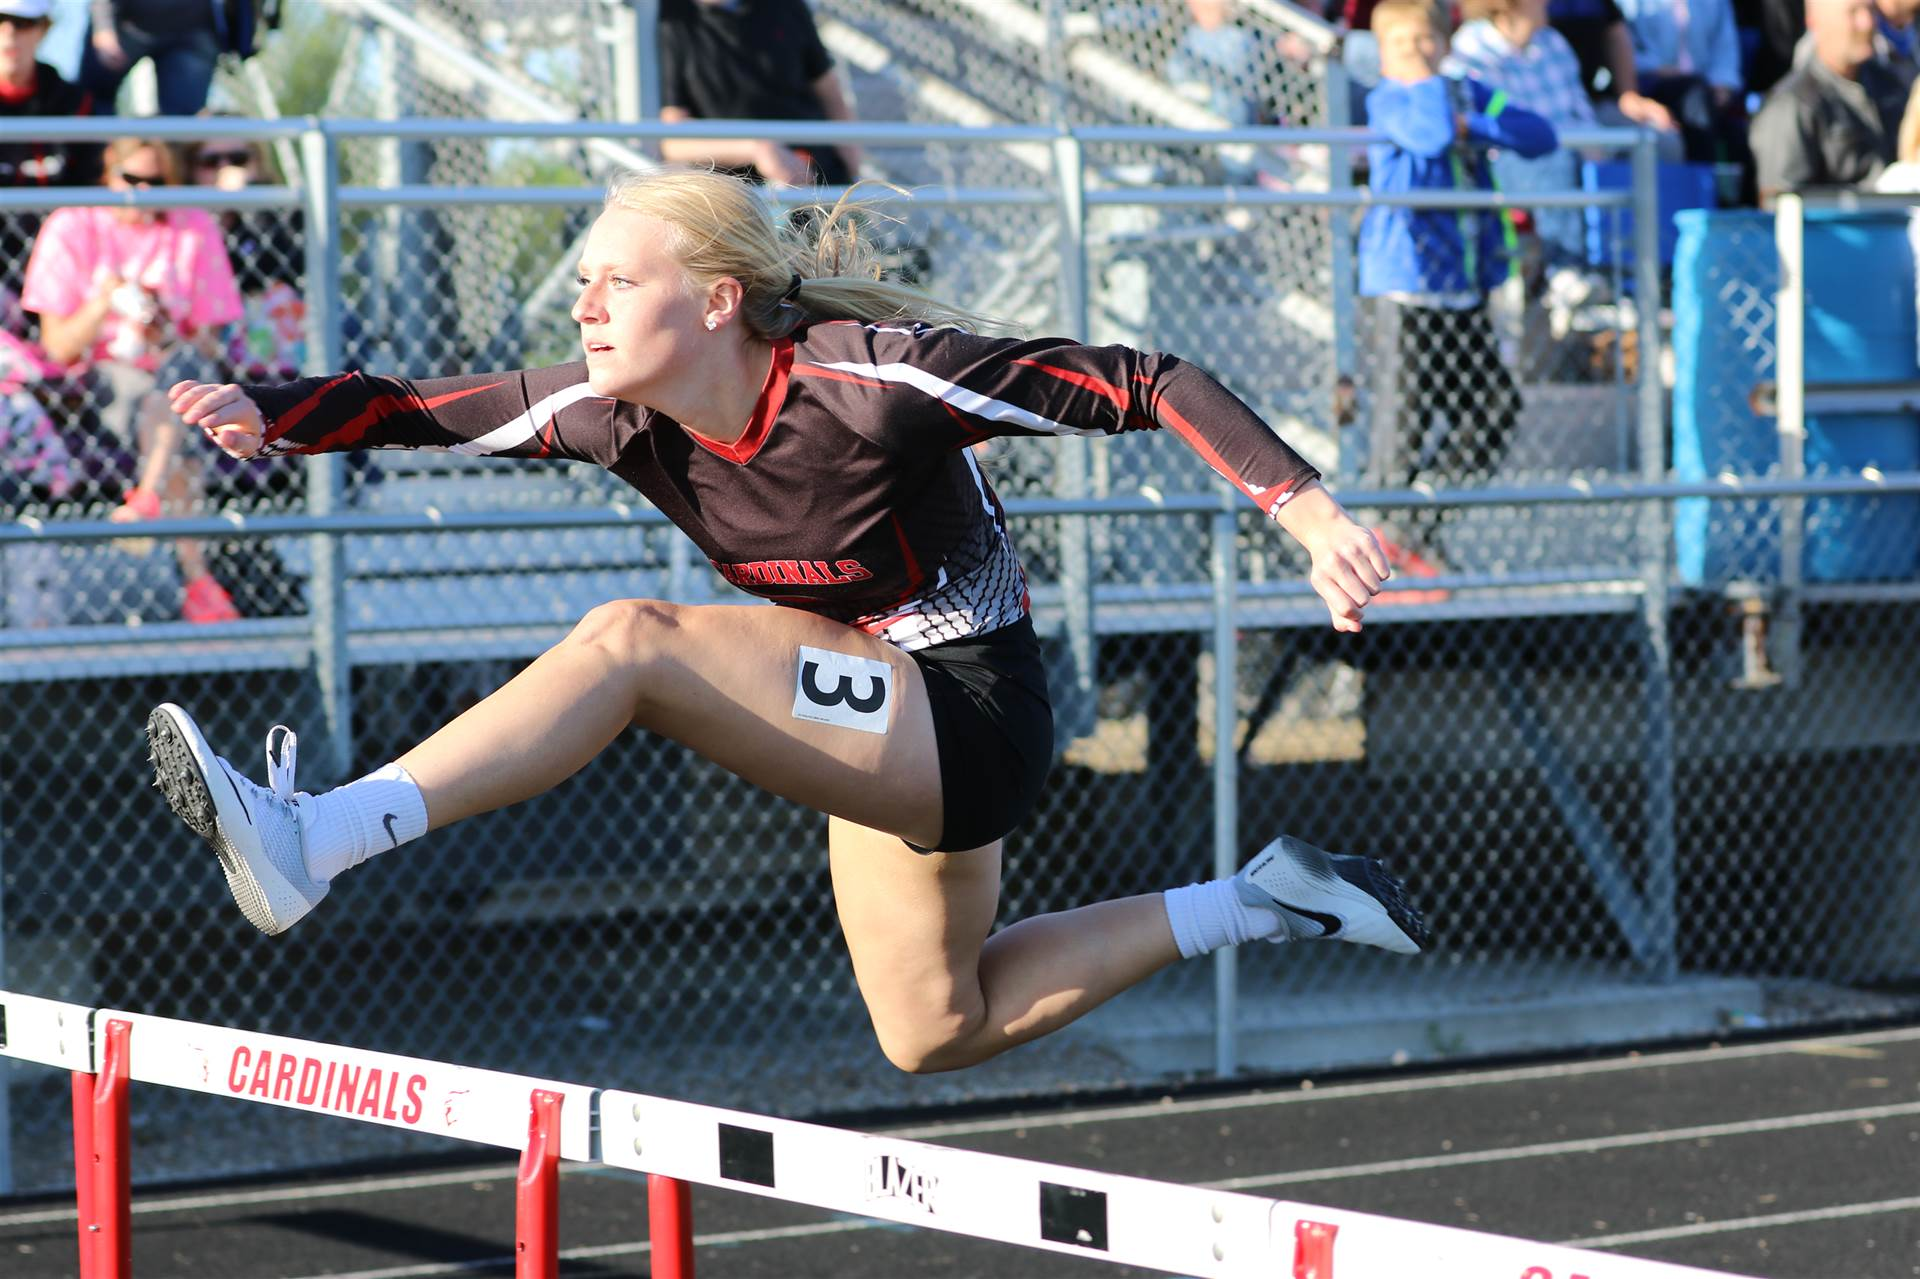 High school student hurdling a hurdle at a track meet